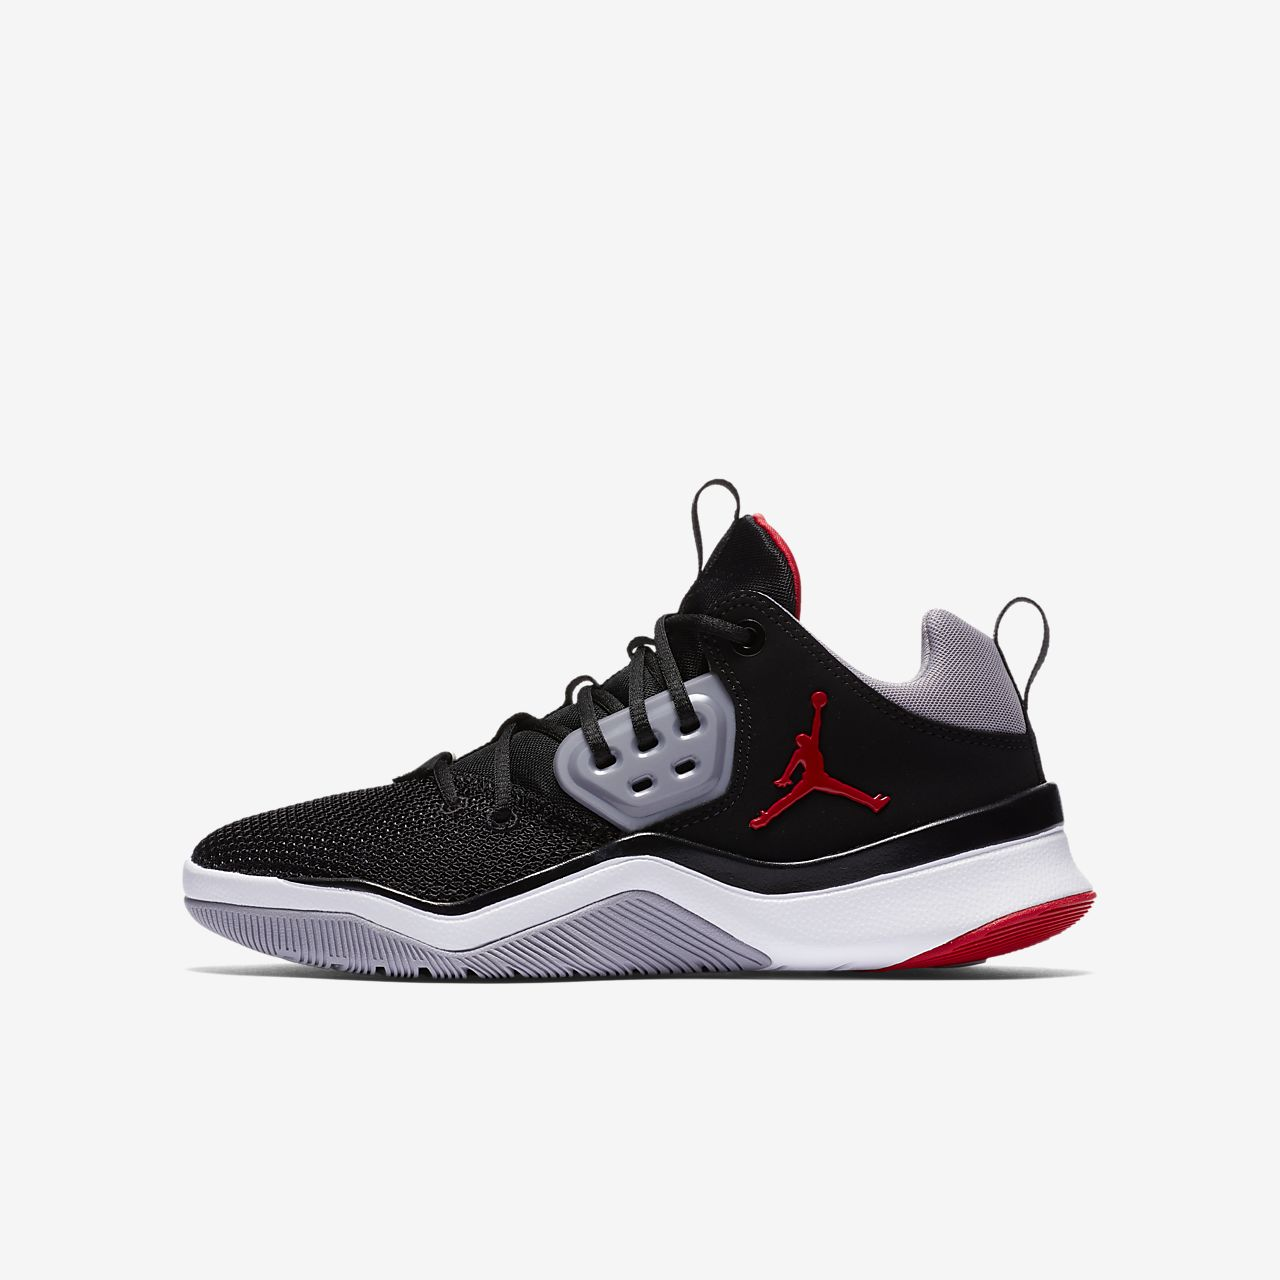 new products a0974 9e43c Jordan Nike Herren Air DNA Rot Textil Synthetik Sneaker -  muwi-duesseldorf.de